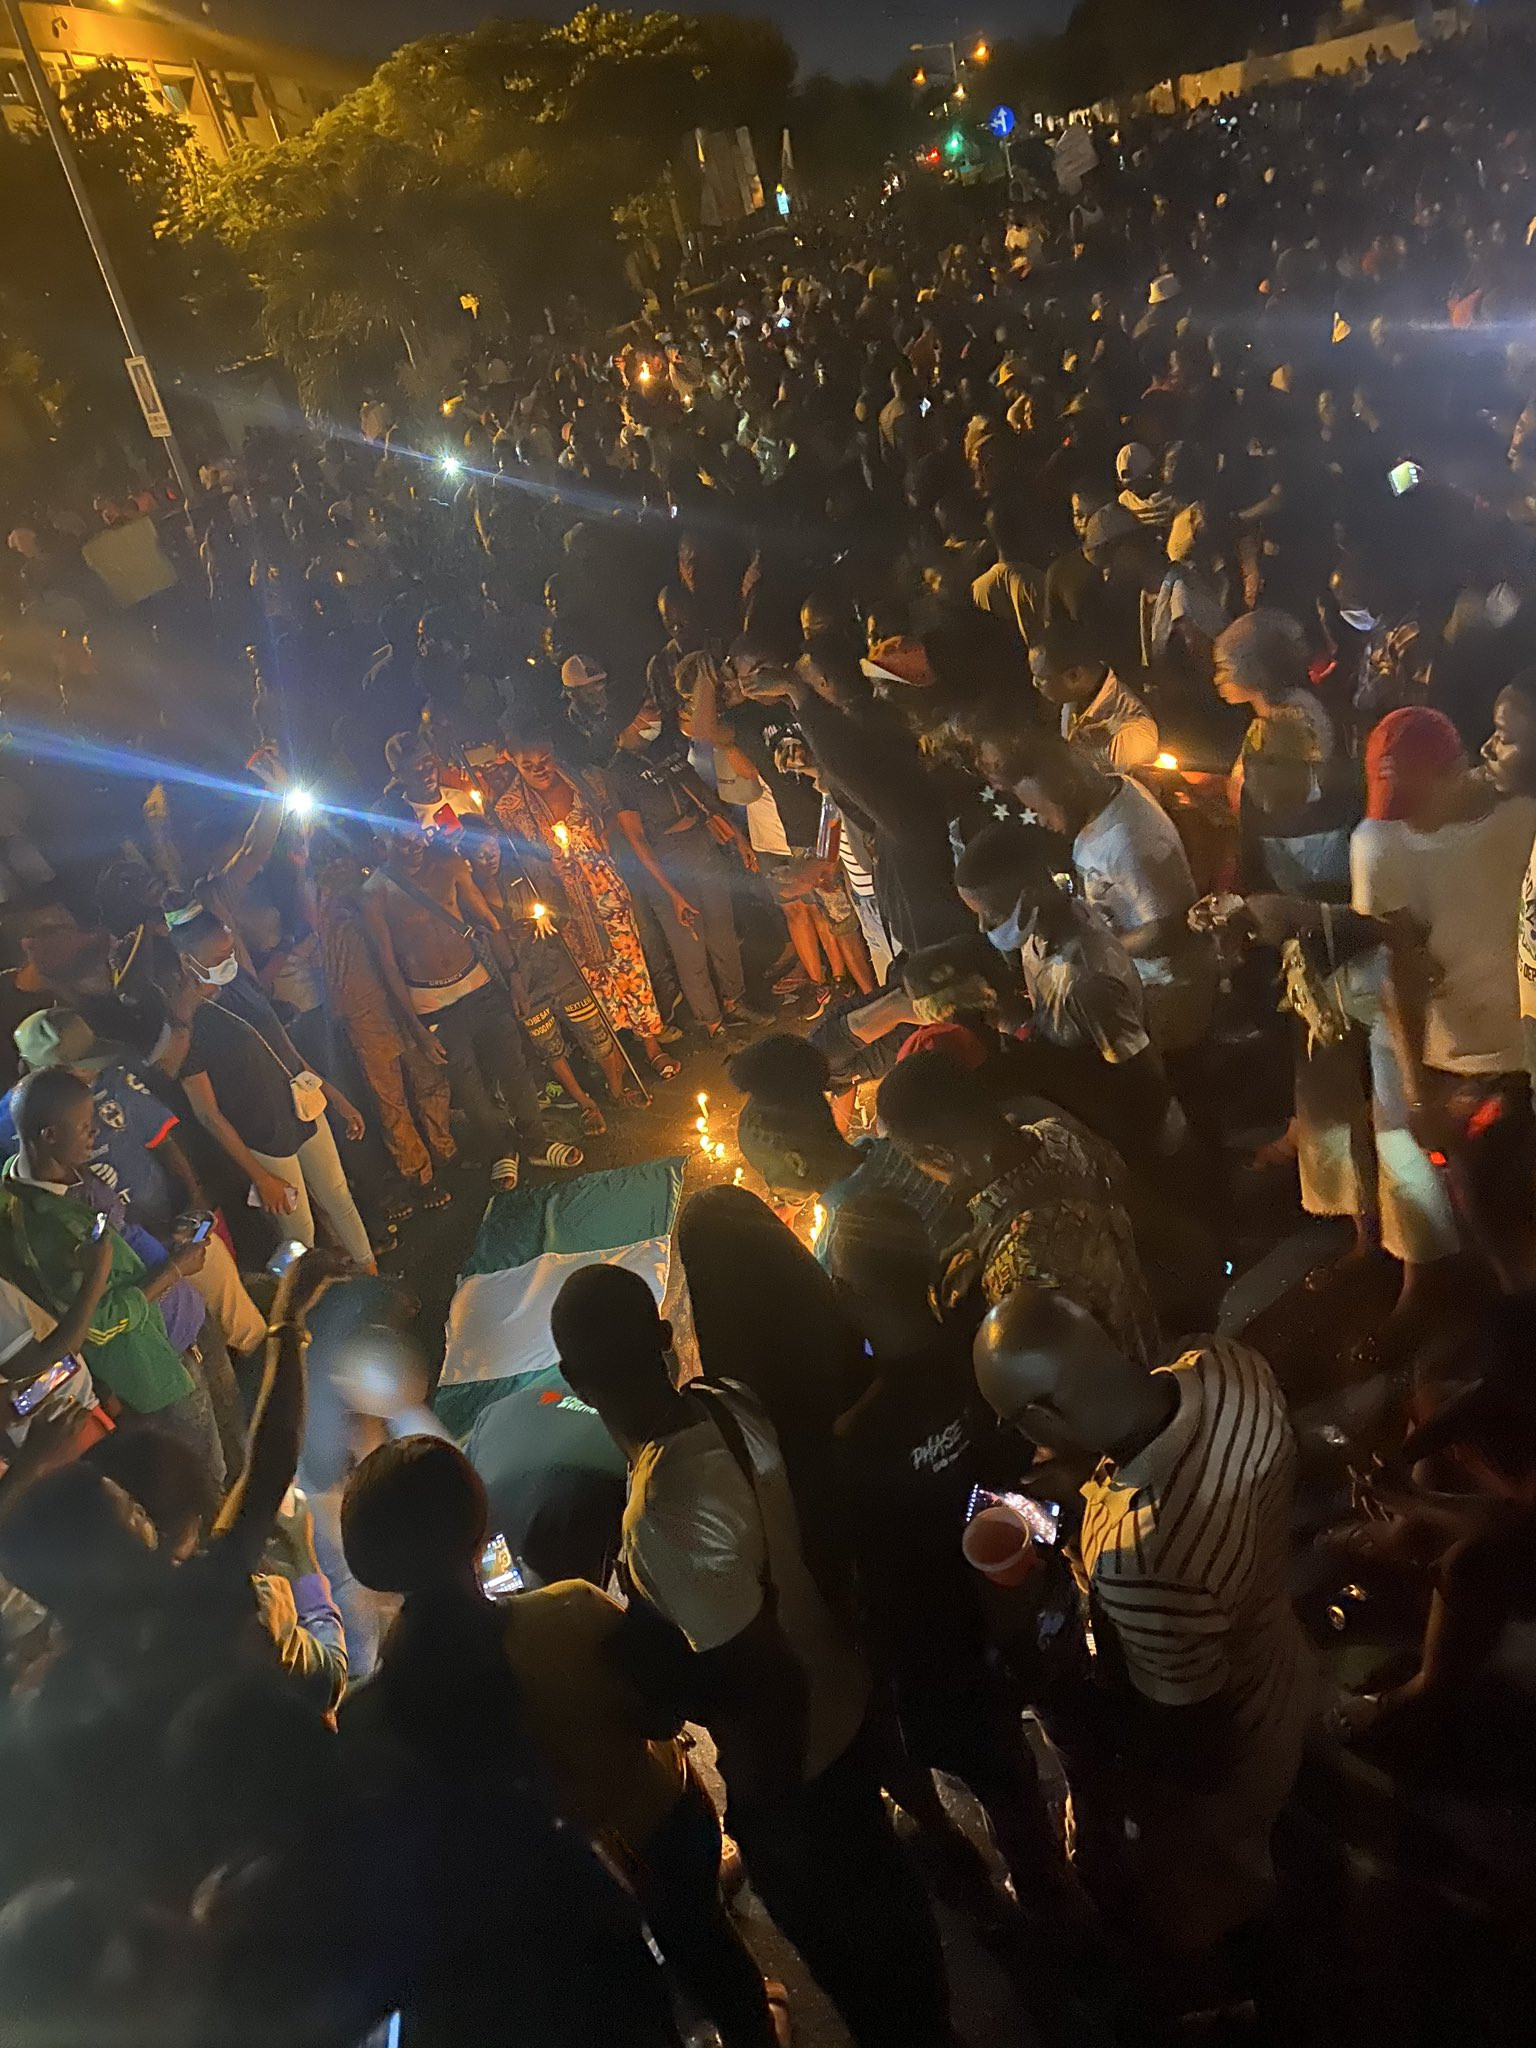 #EndSARS protesters hold candlelight session in honor of victims of police brutality (photos/videos)